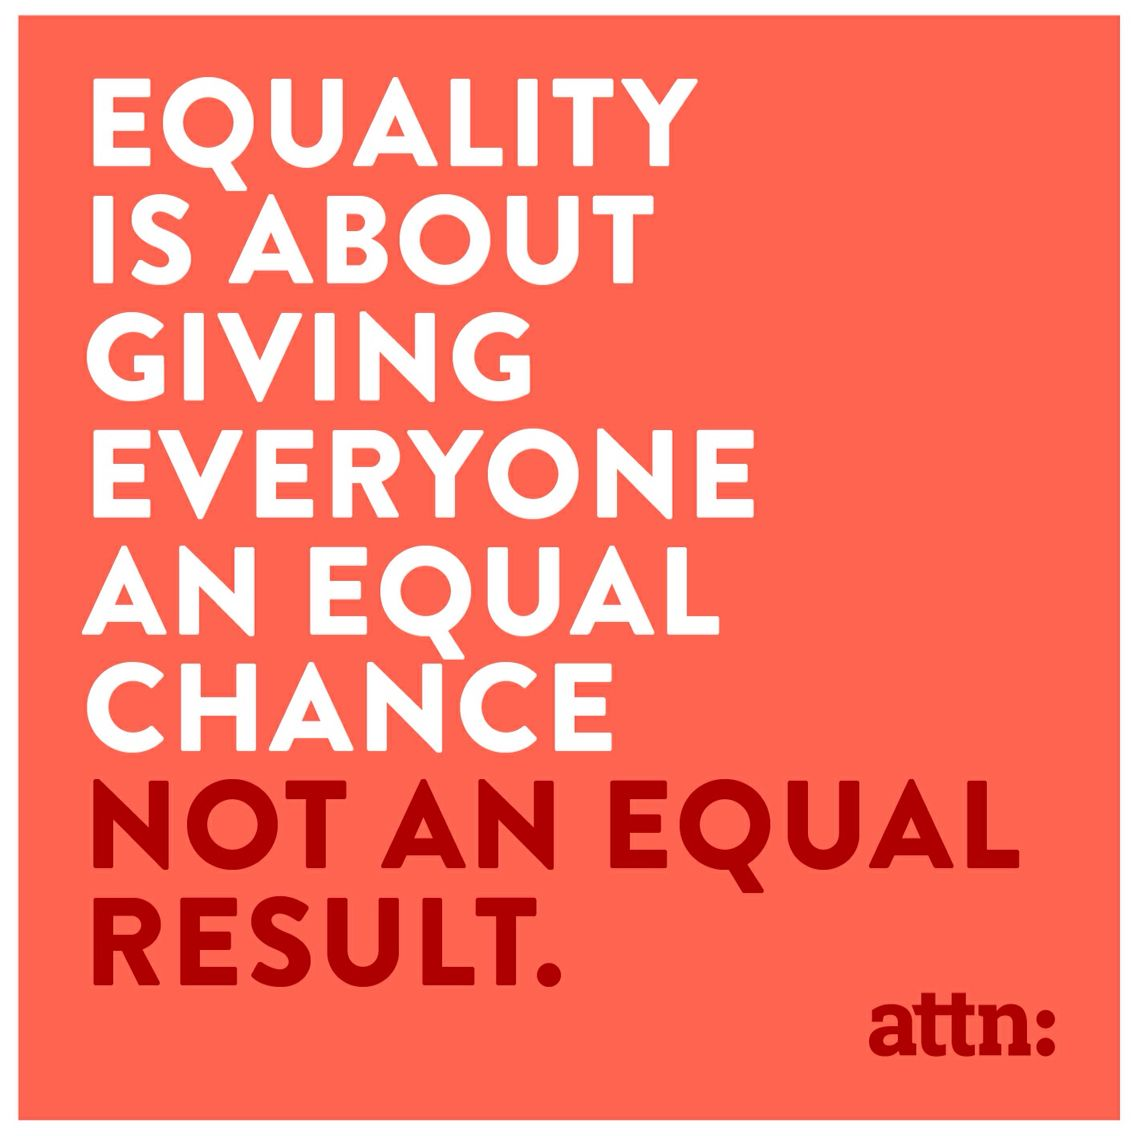 Pin By Alexa Polar On Quotes And Some Meaningless But Fun Thoughts Life Quotes Equality Words